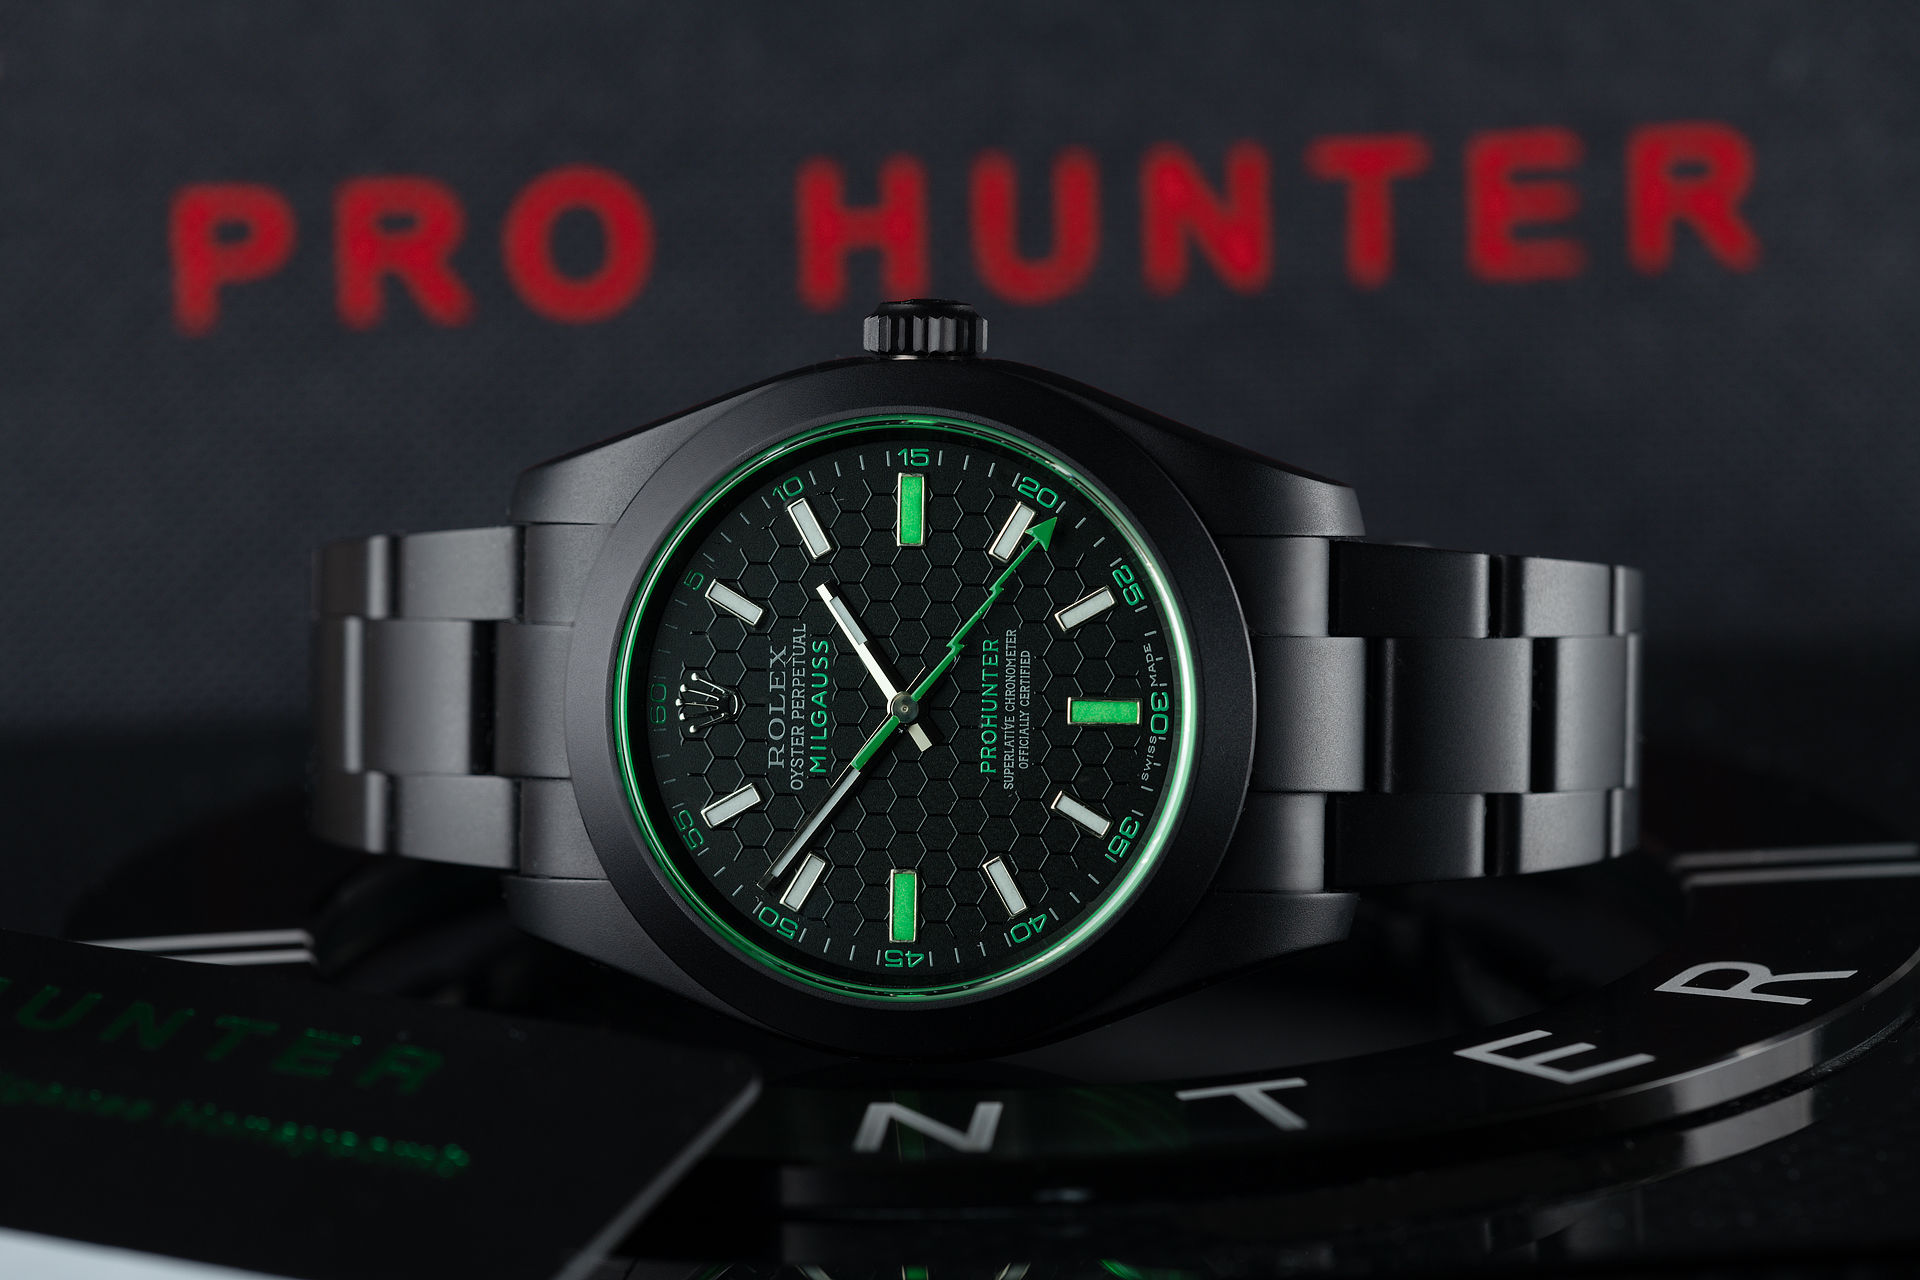 ref 116400GV | One of 100 | Pro Hunter Milgauss